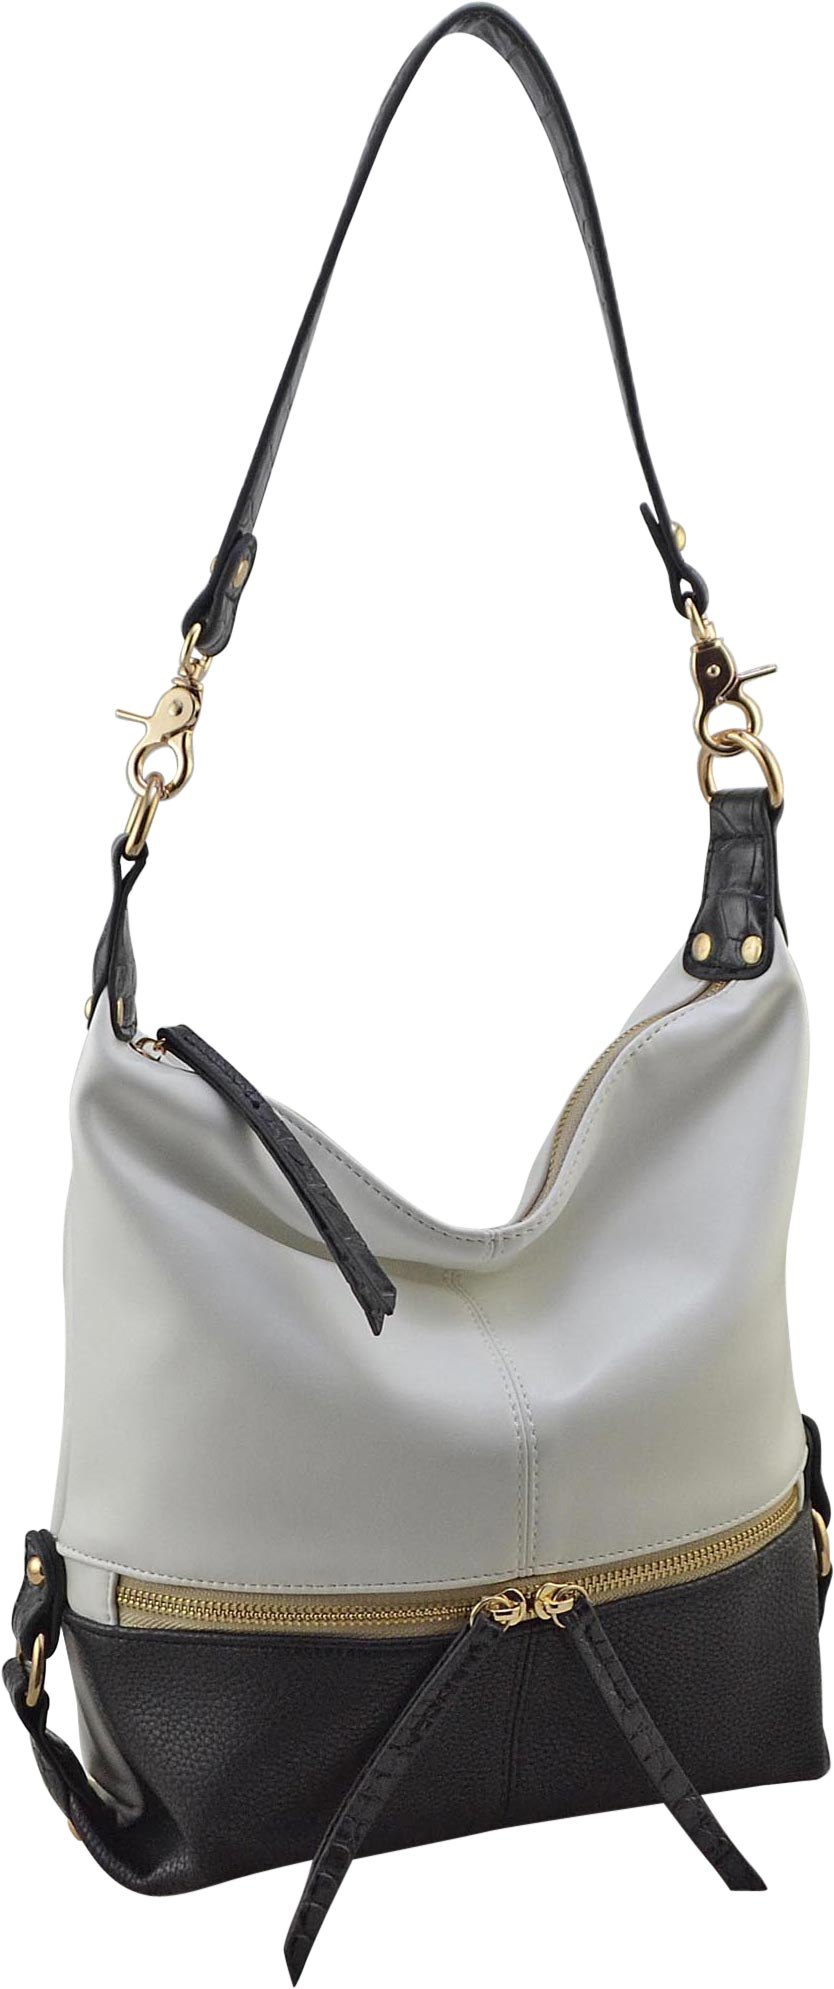 Colorblock Hobo | Large (CLEARANCE) - Susie O's Handbags